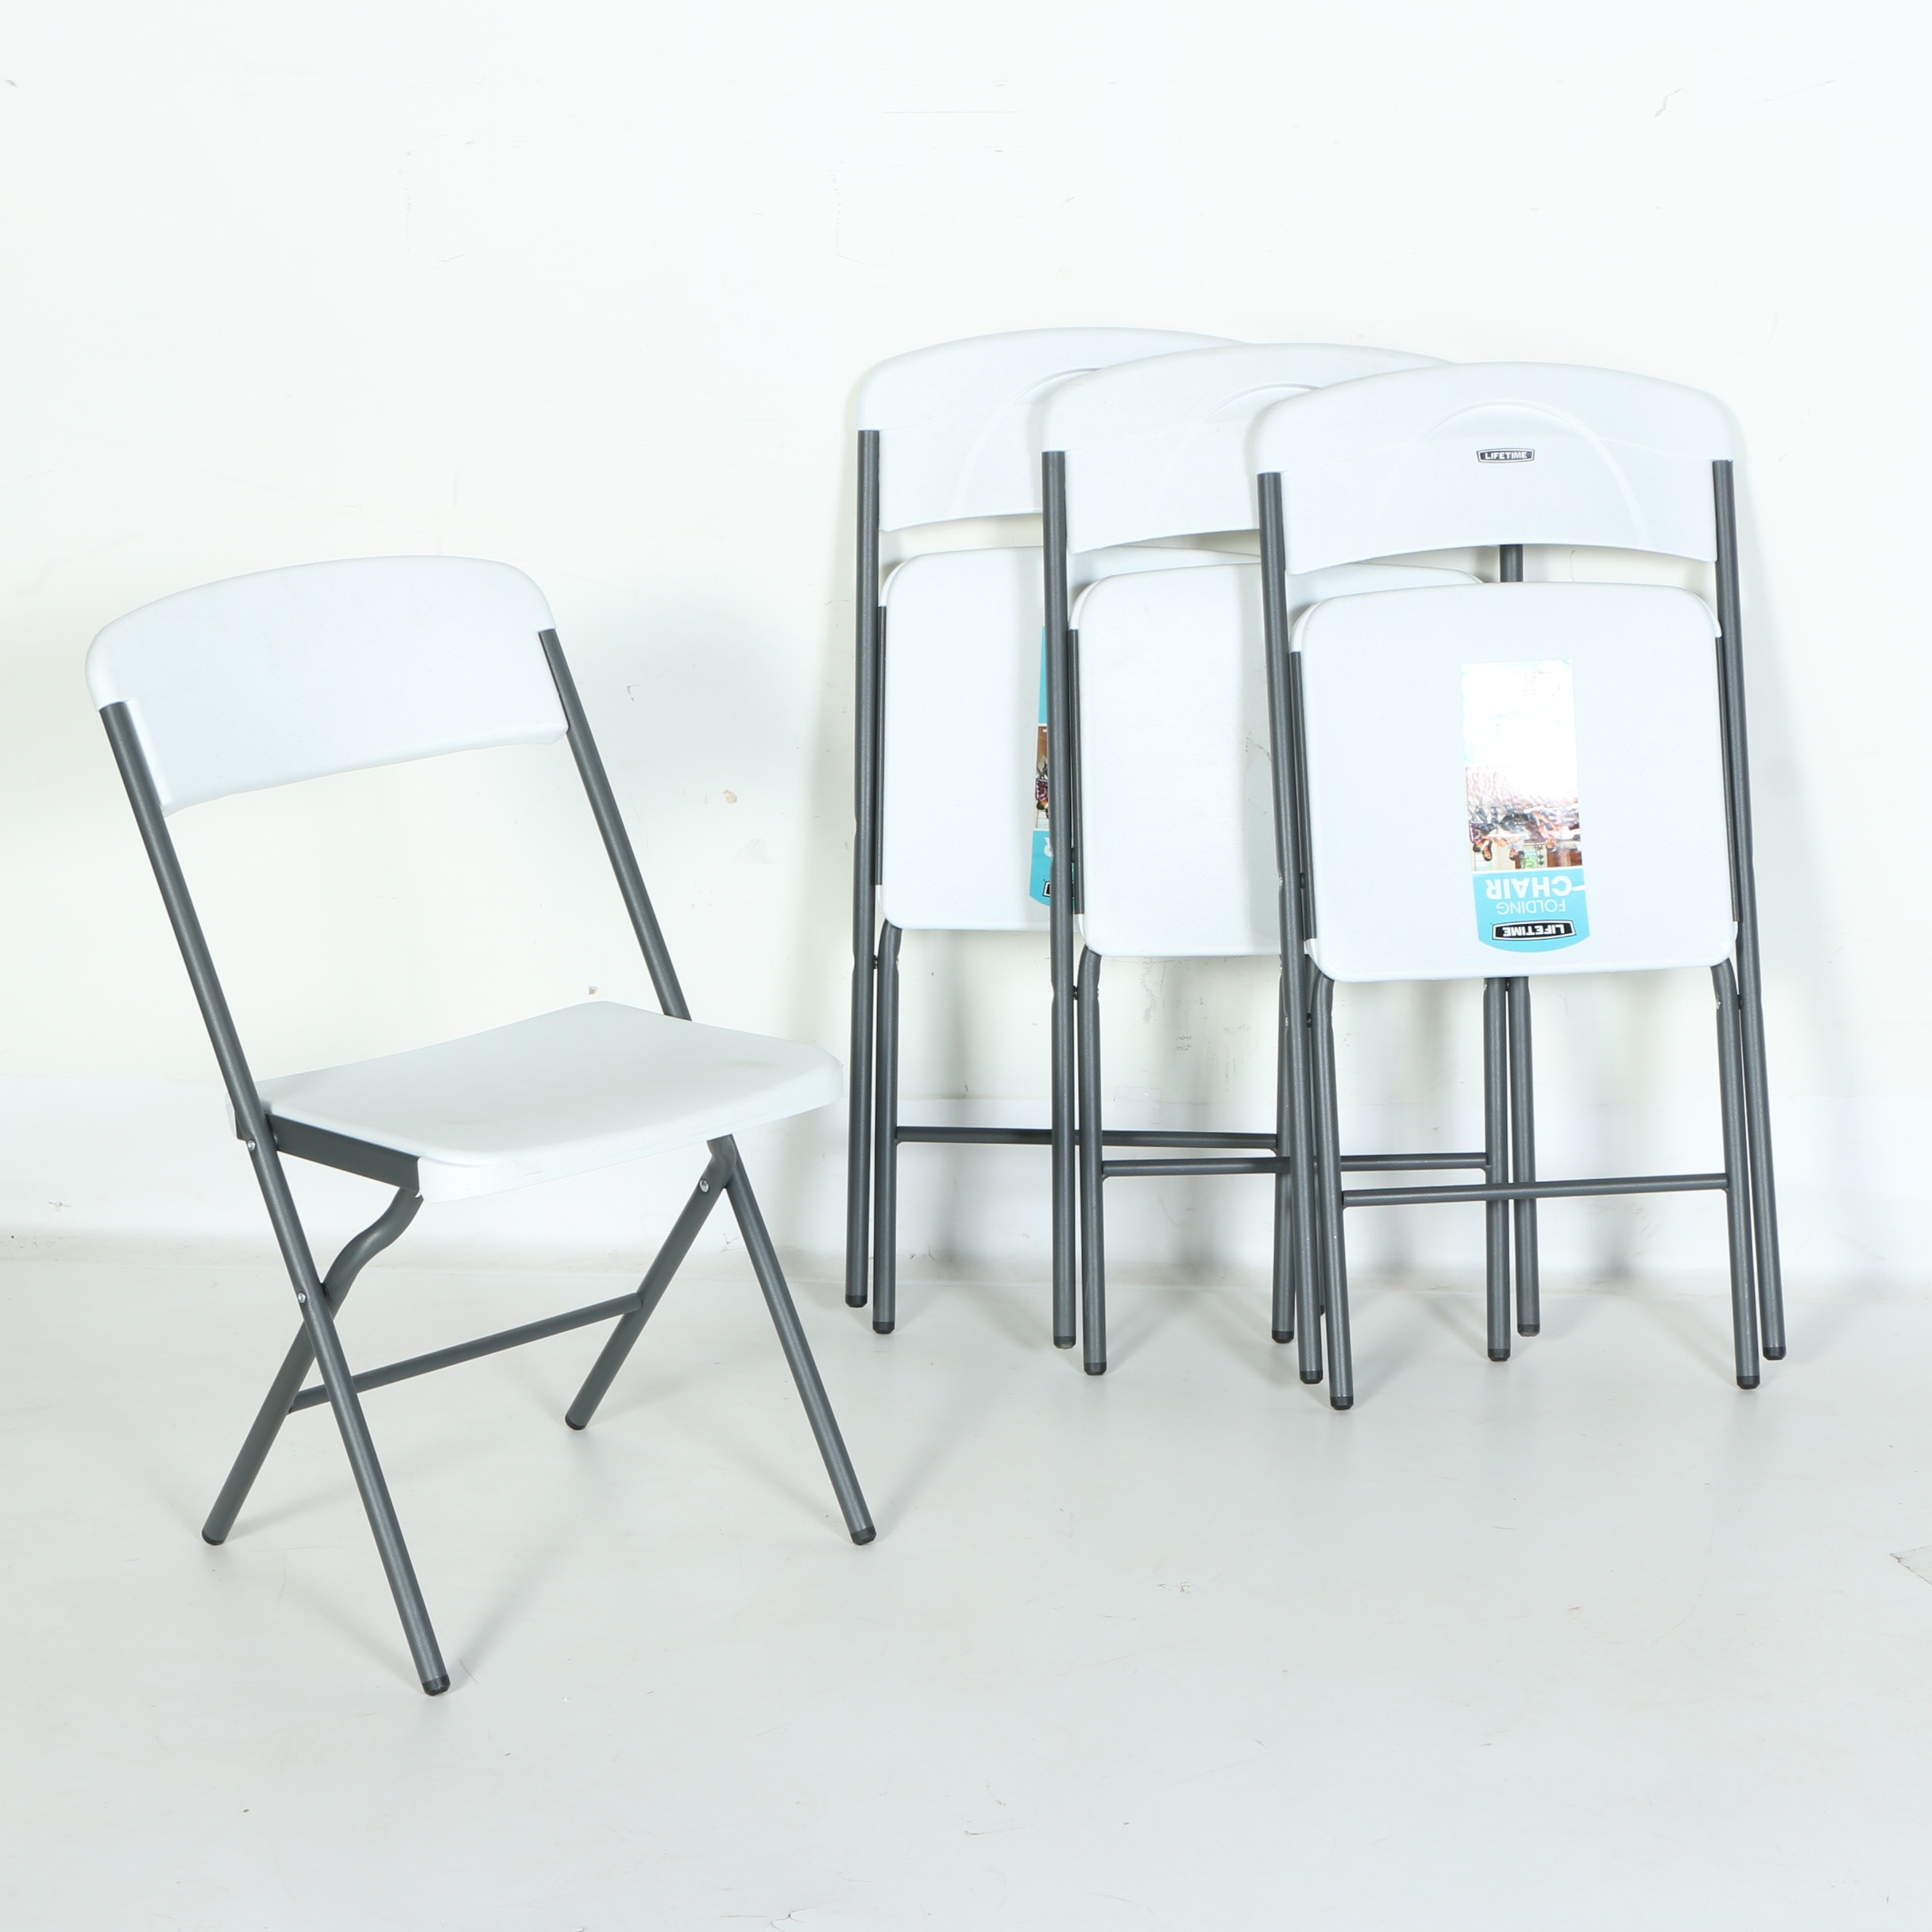 Set of Folding Chairs by Lifetime